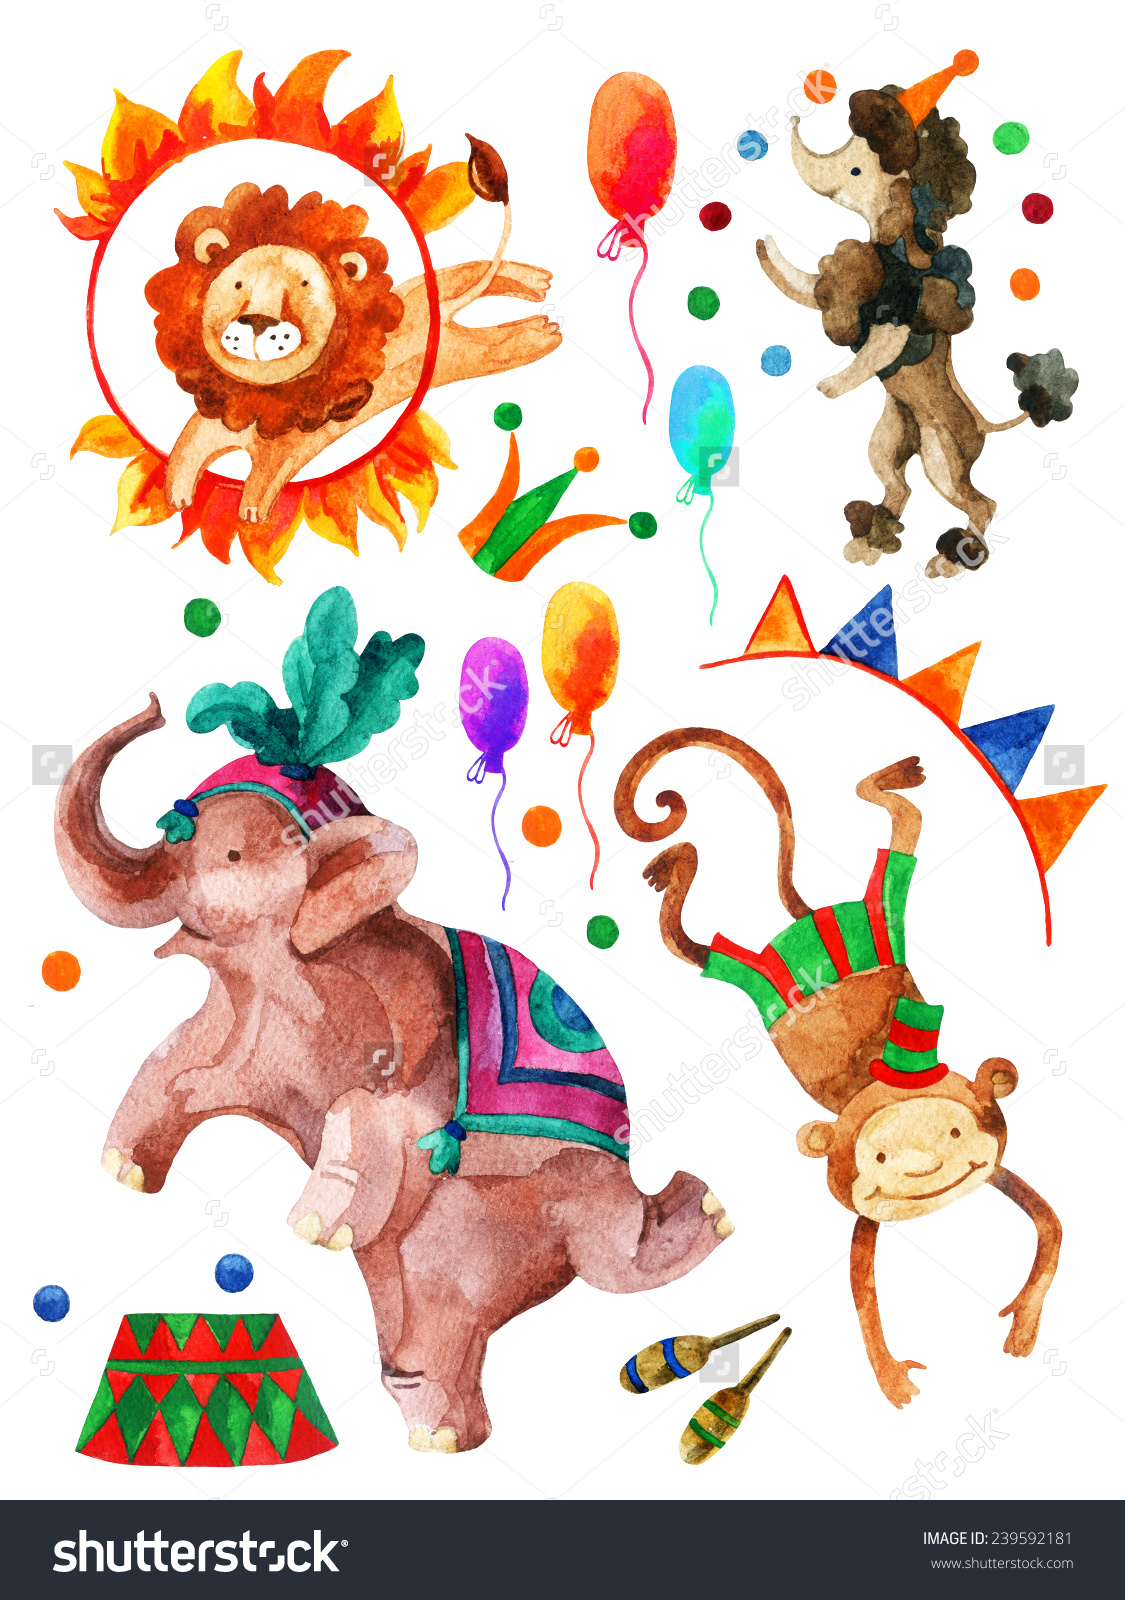 Watercolor Circus Cartoon Elephant Monkey Lion Stock Illustration.